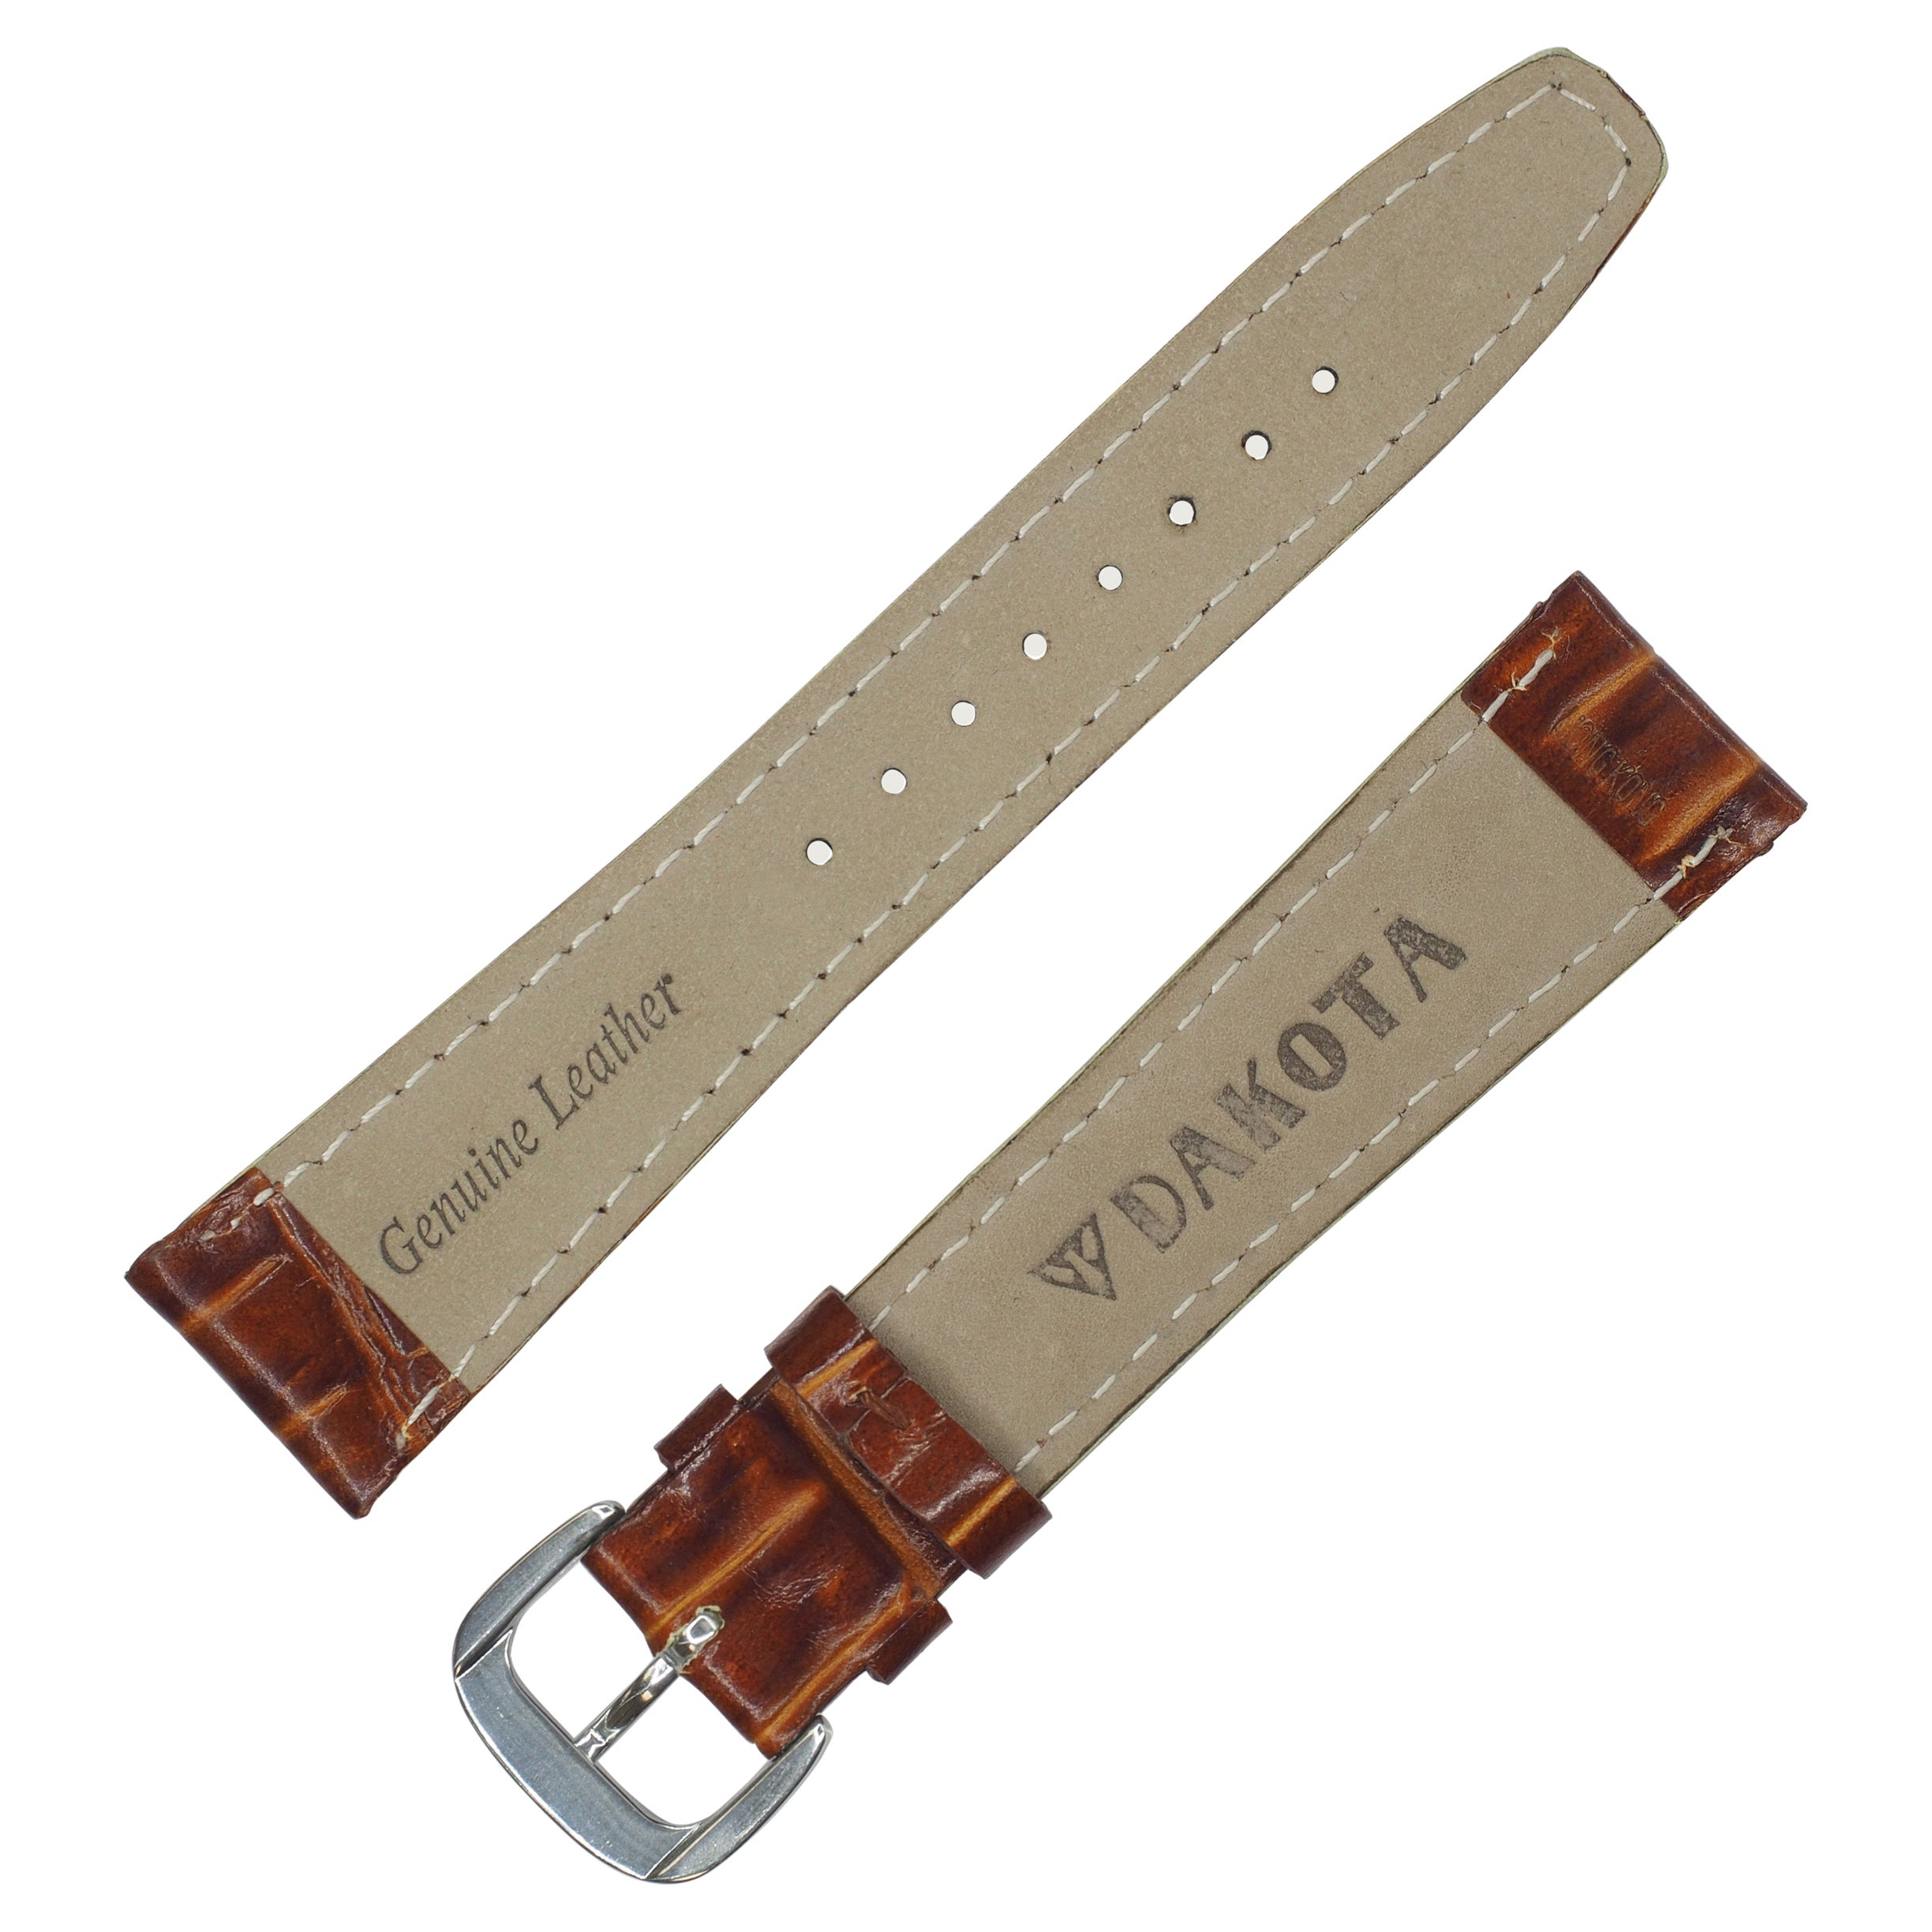 860ad0675 Shop Dakota Mahogany Brown Croc Grain Genuine Leather Padded Watch Band  (12mm, 16mm, 18mm, 20mm) - Mahogany Brown - Free Shipping On Orders Over  $45 ...